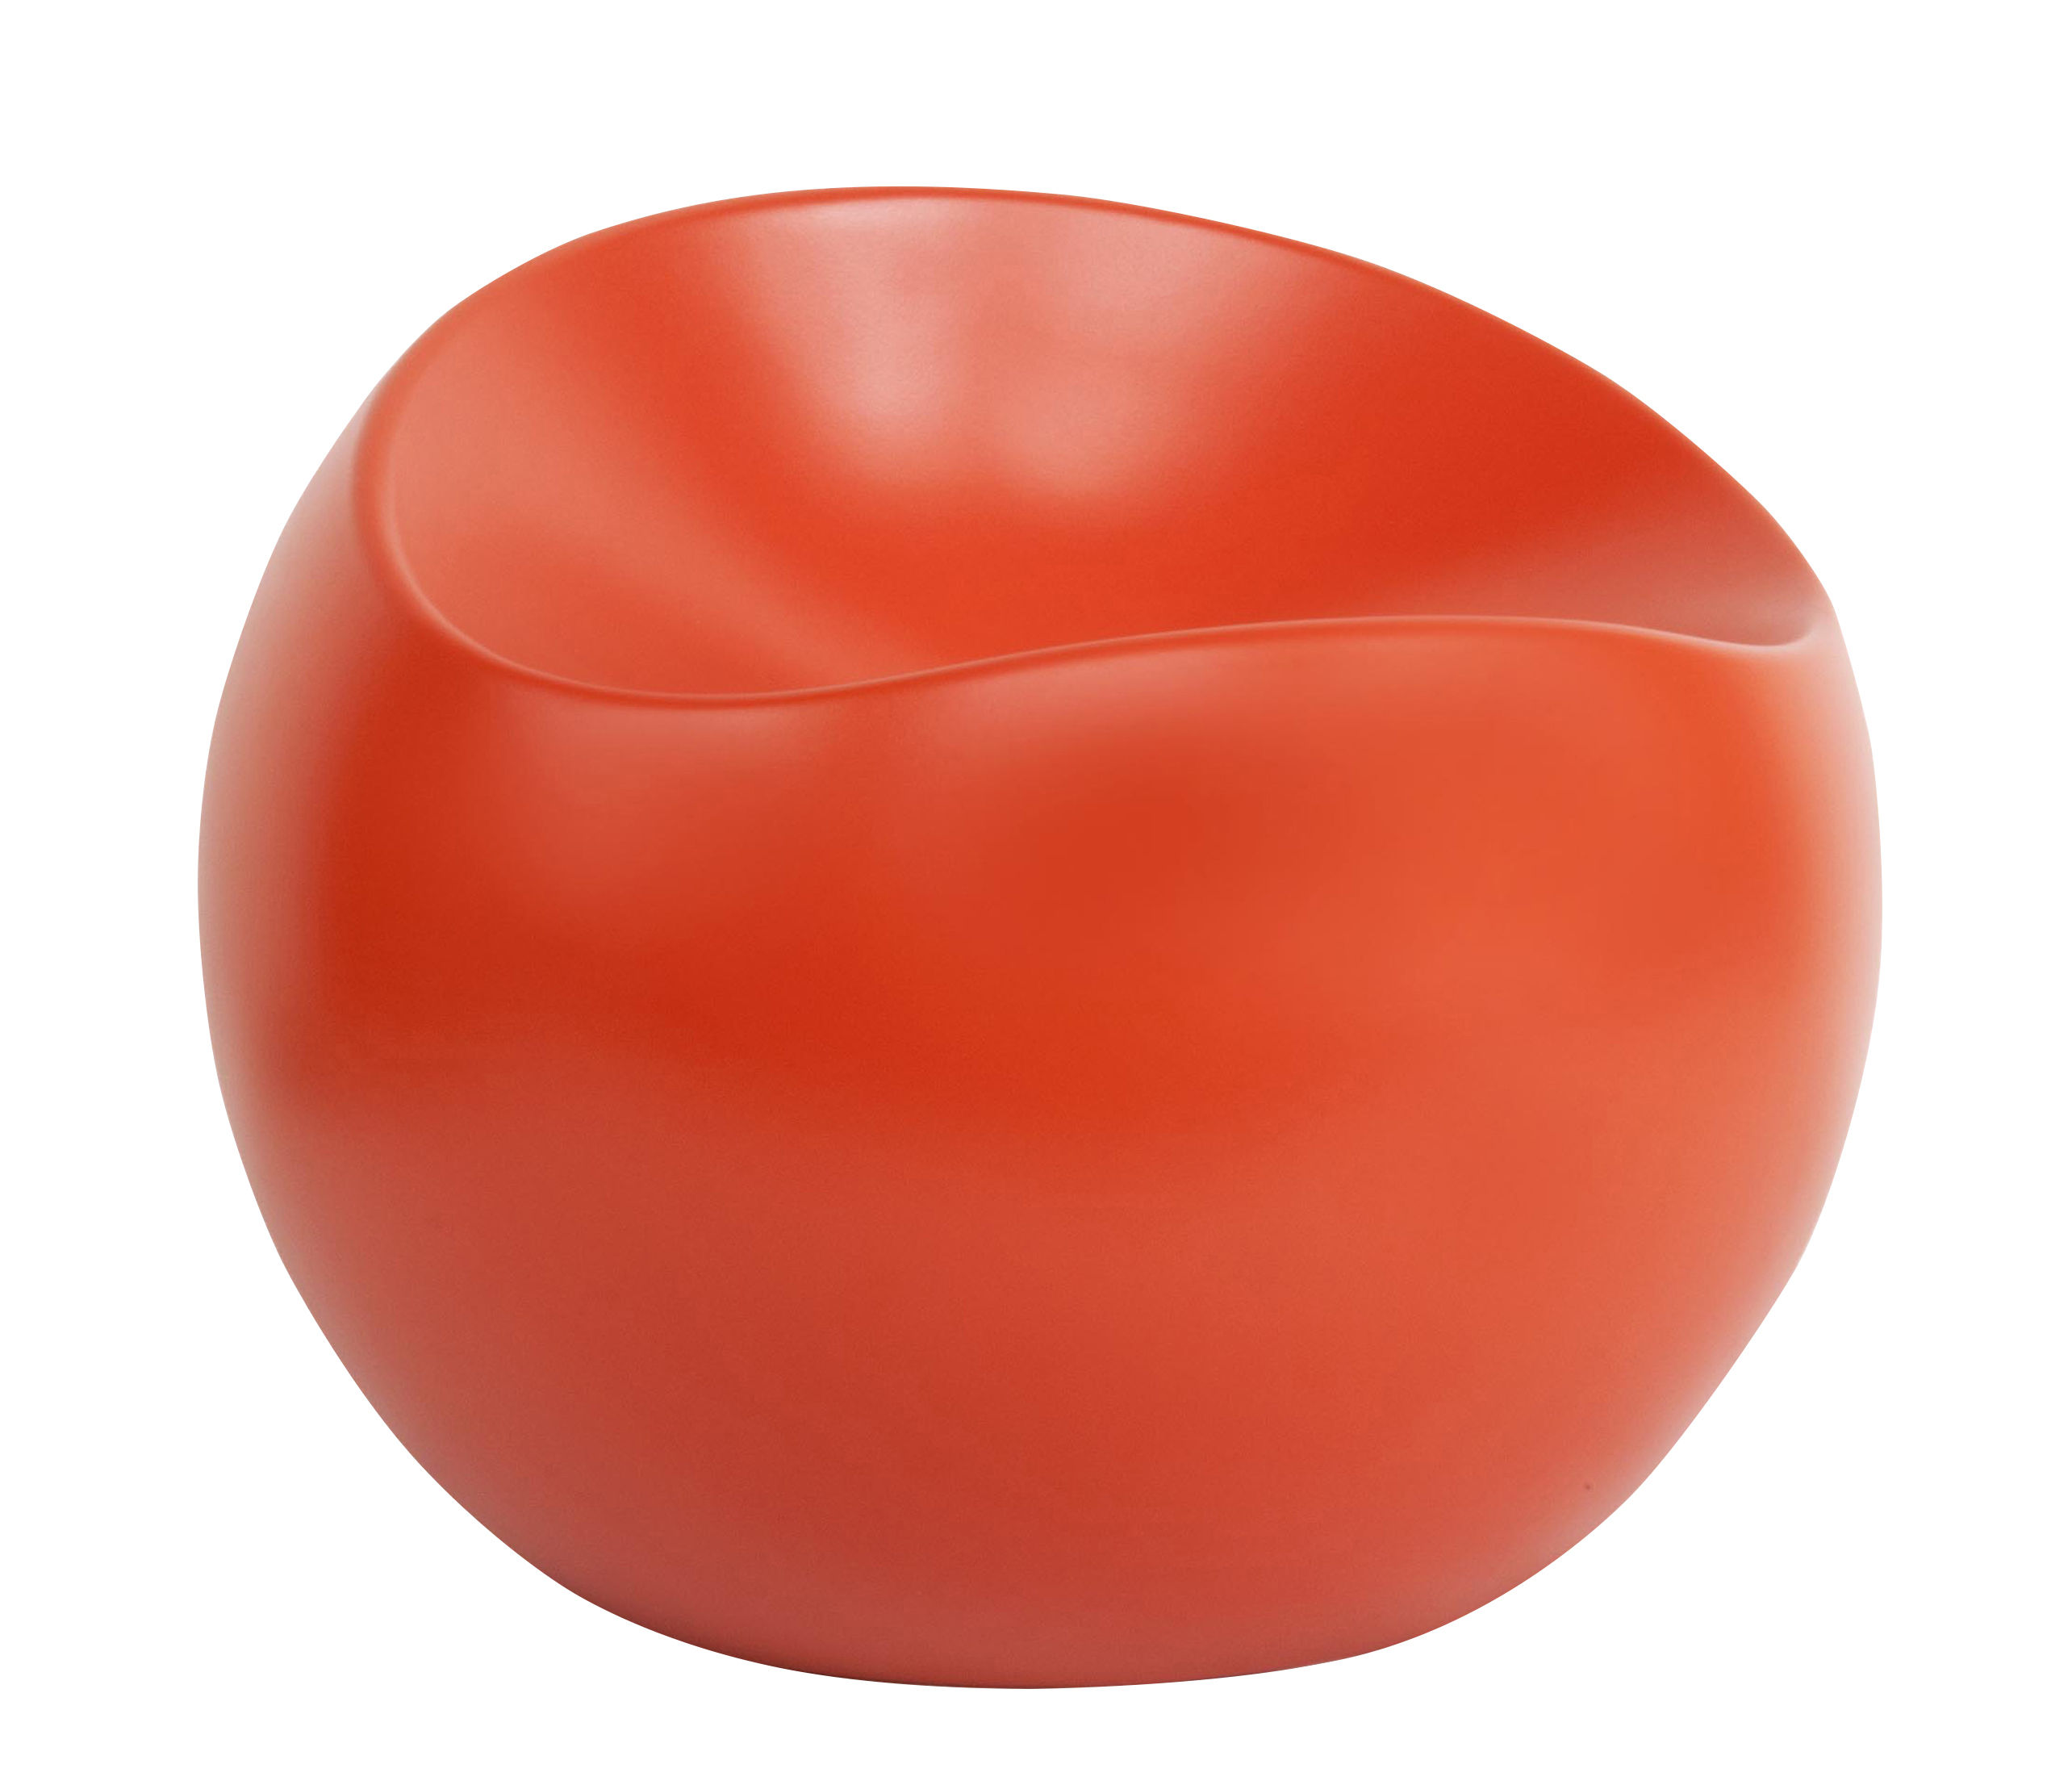 Ball Sessel Ball Chair Sitzkissen Matt Xl Boom